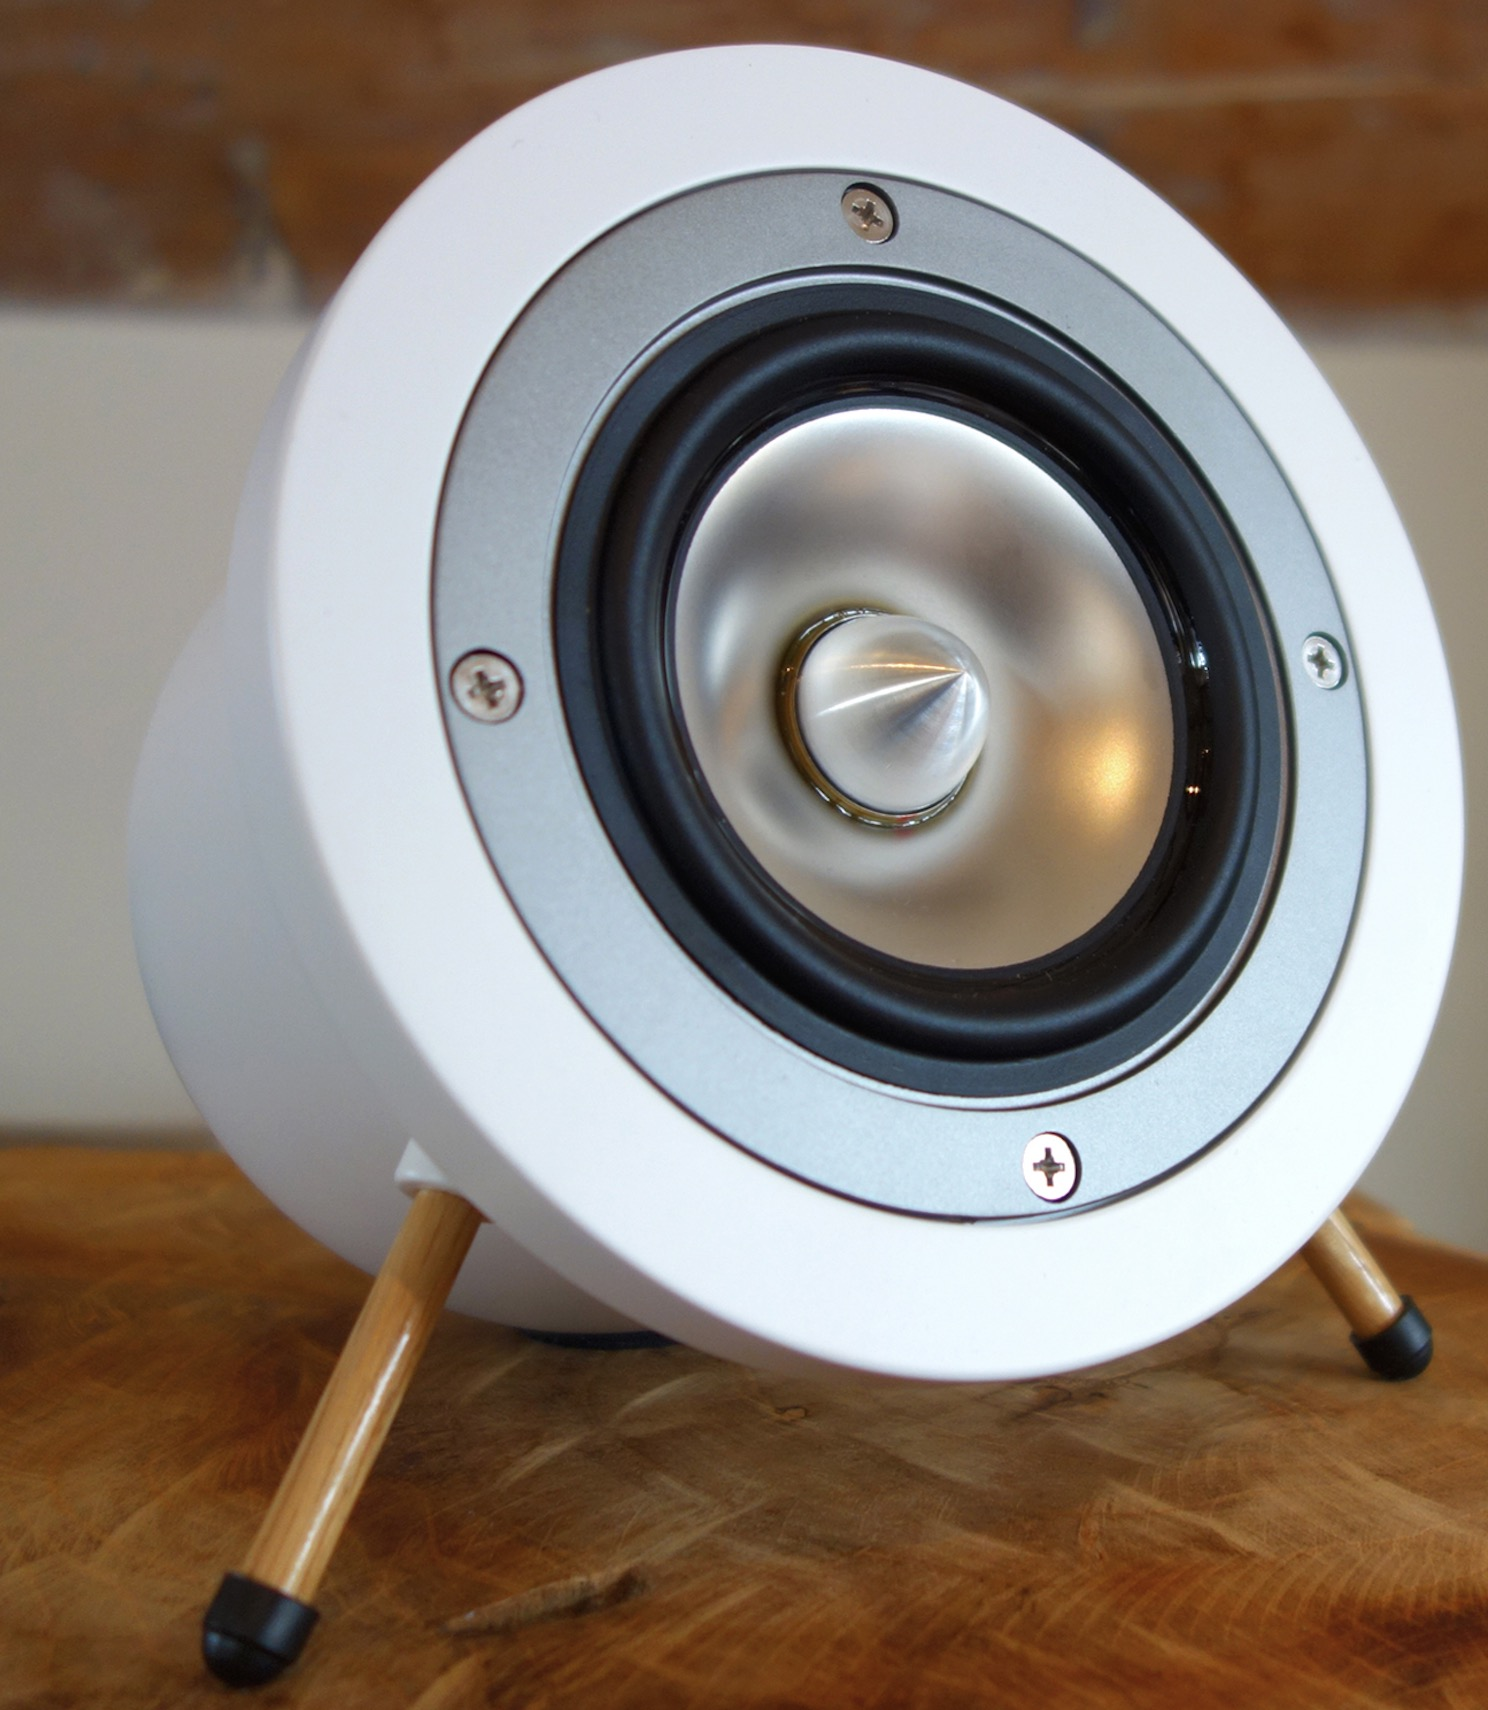 Degas Audio D1 Speaker: Using full-range titanium drivers